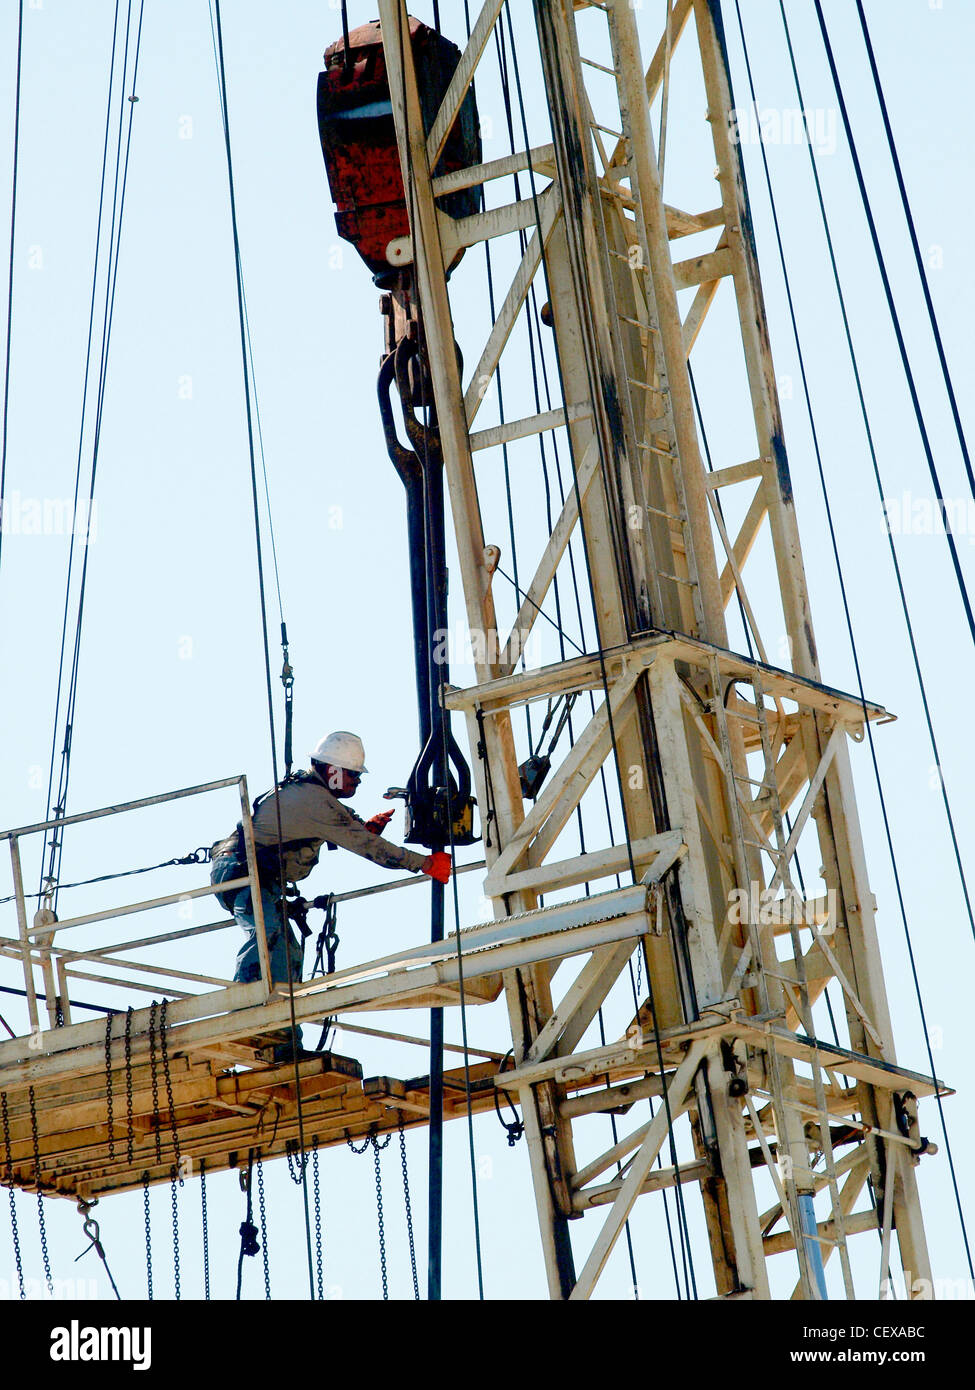 Ft Worth Tex USA - Roughneck on a mobile drilling rig pulls pipe after fracking. - Stock Image